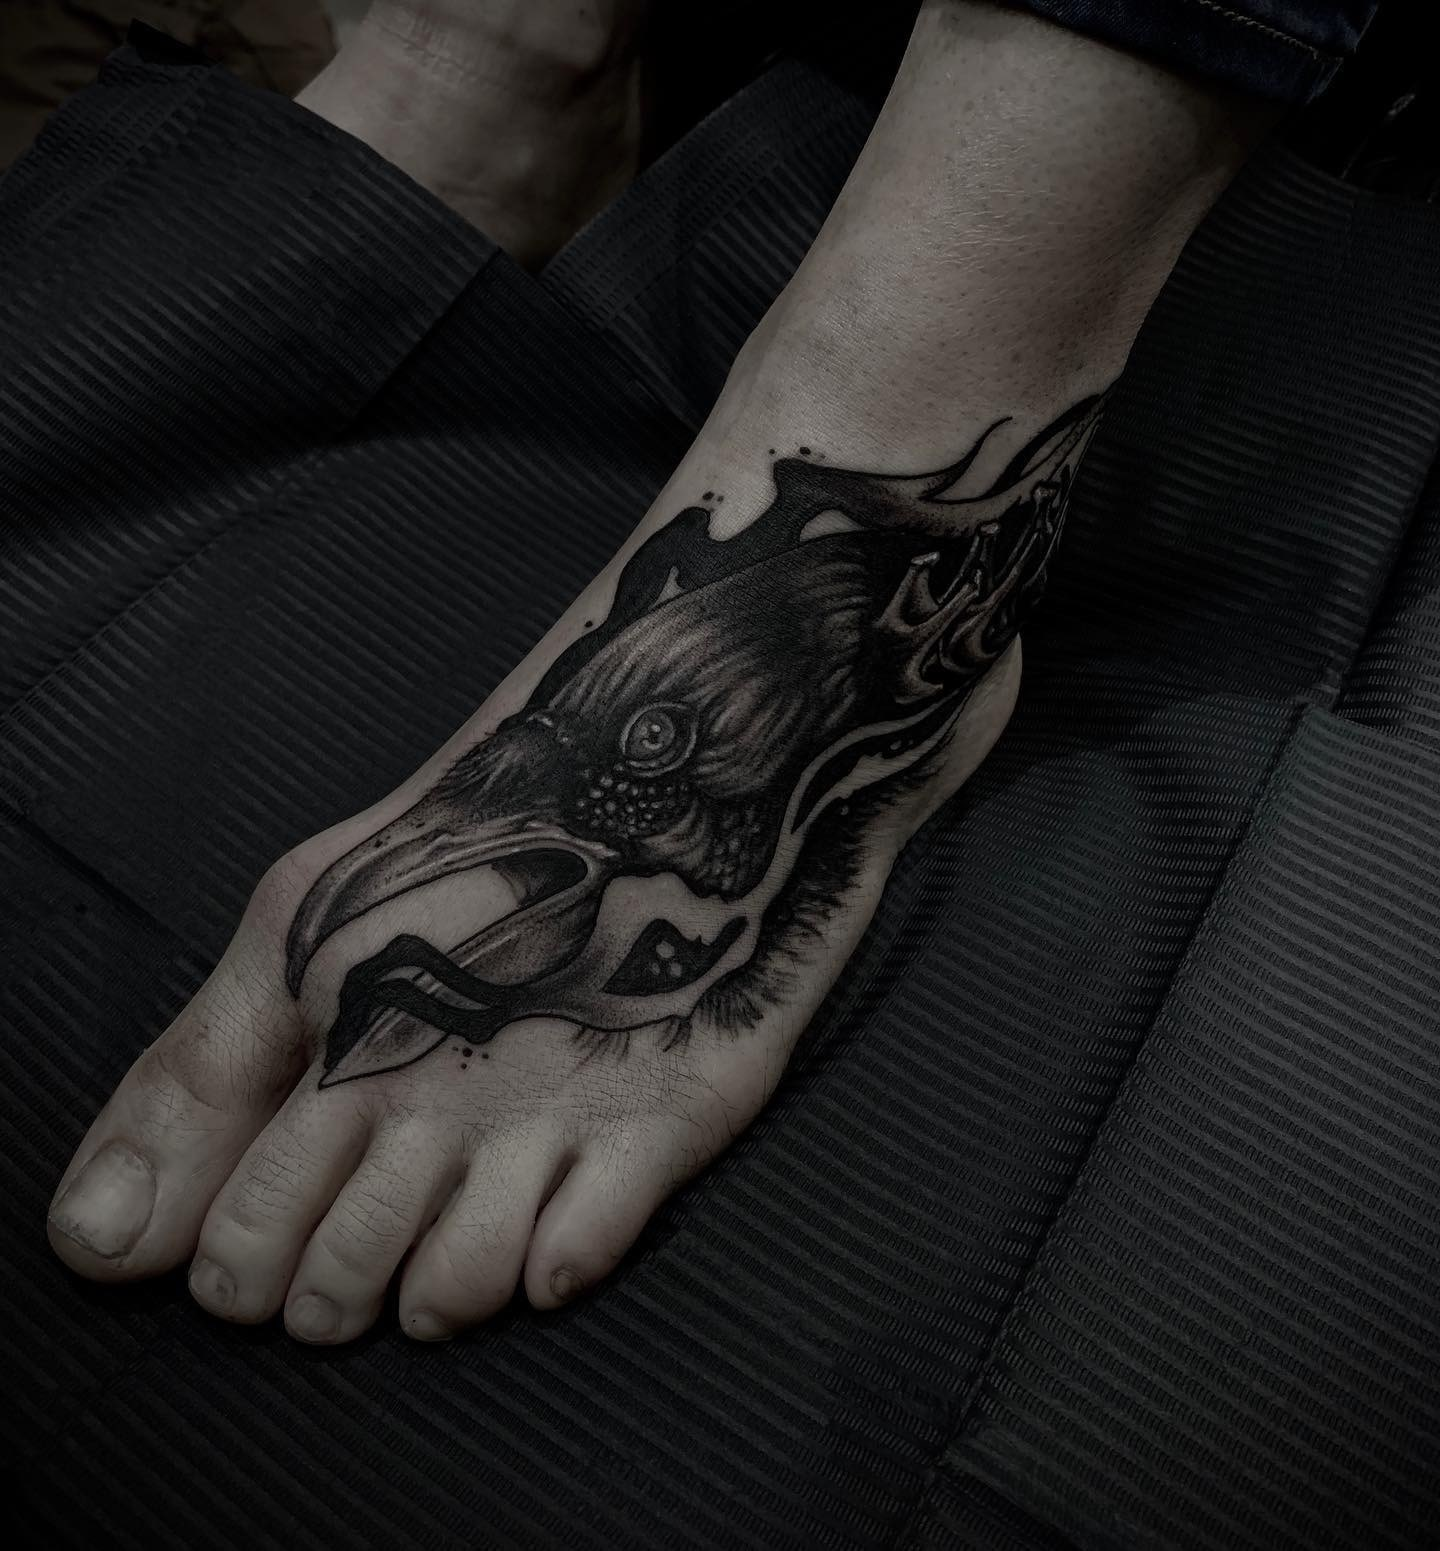 Tattoo Anansi München Artist David neotraditional black and grey raven Rabe foot